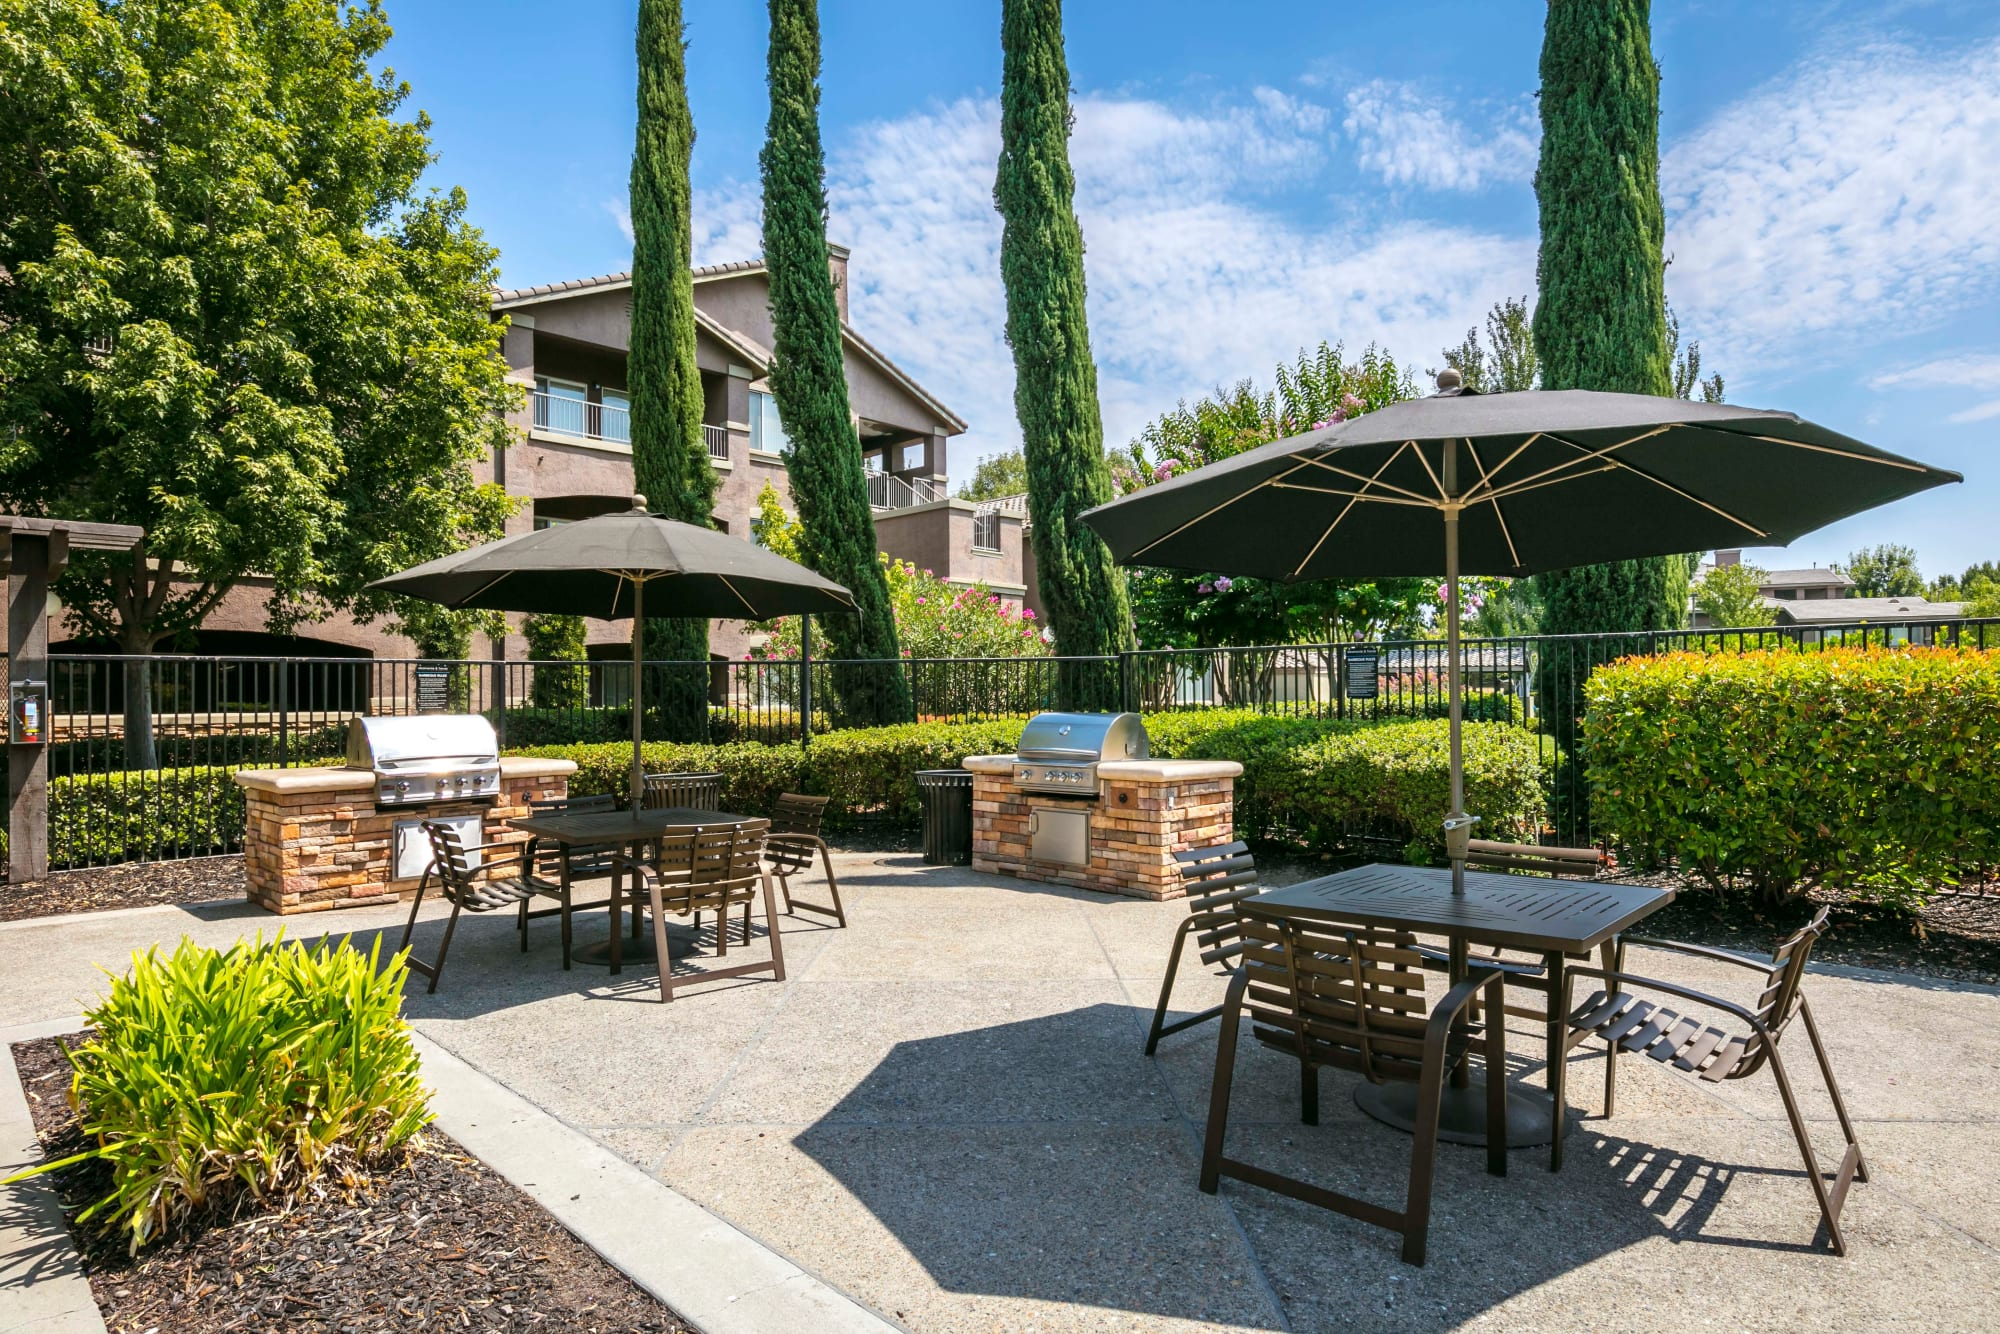 BBQ area at Miramonte and Trovas in Sacramento, California